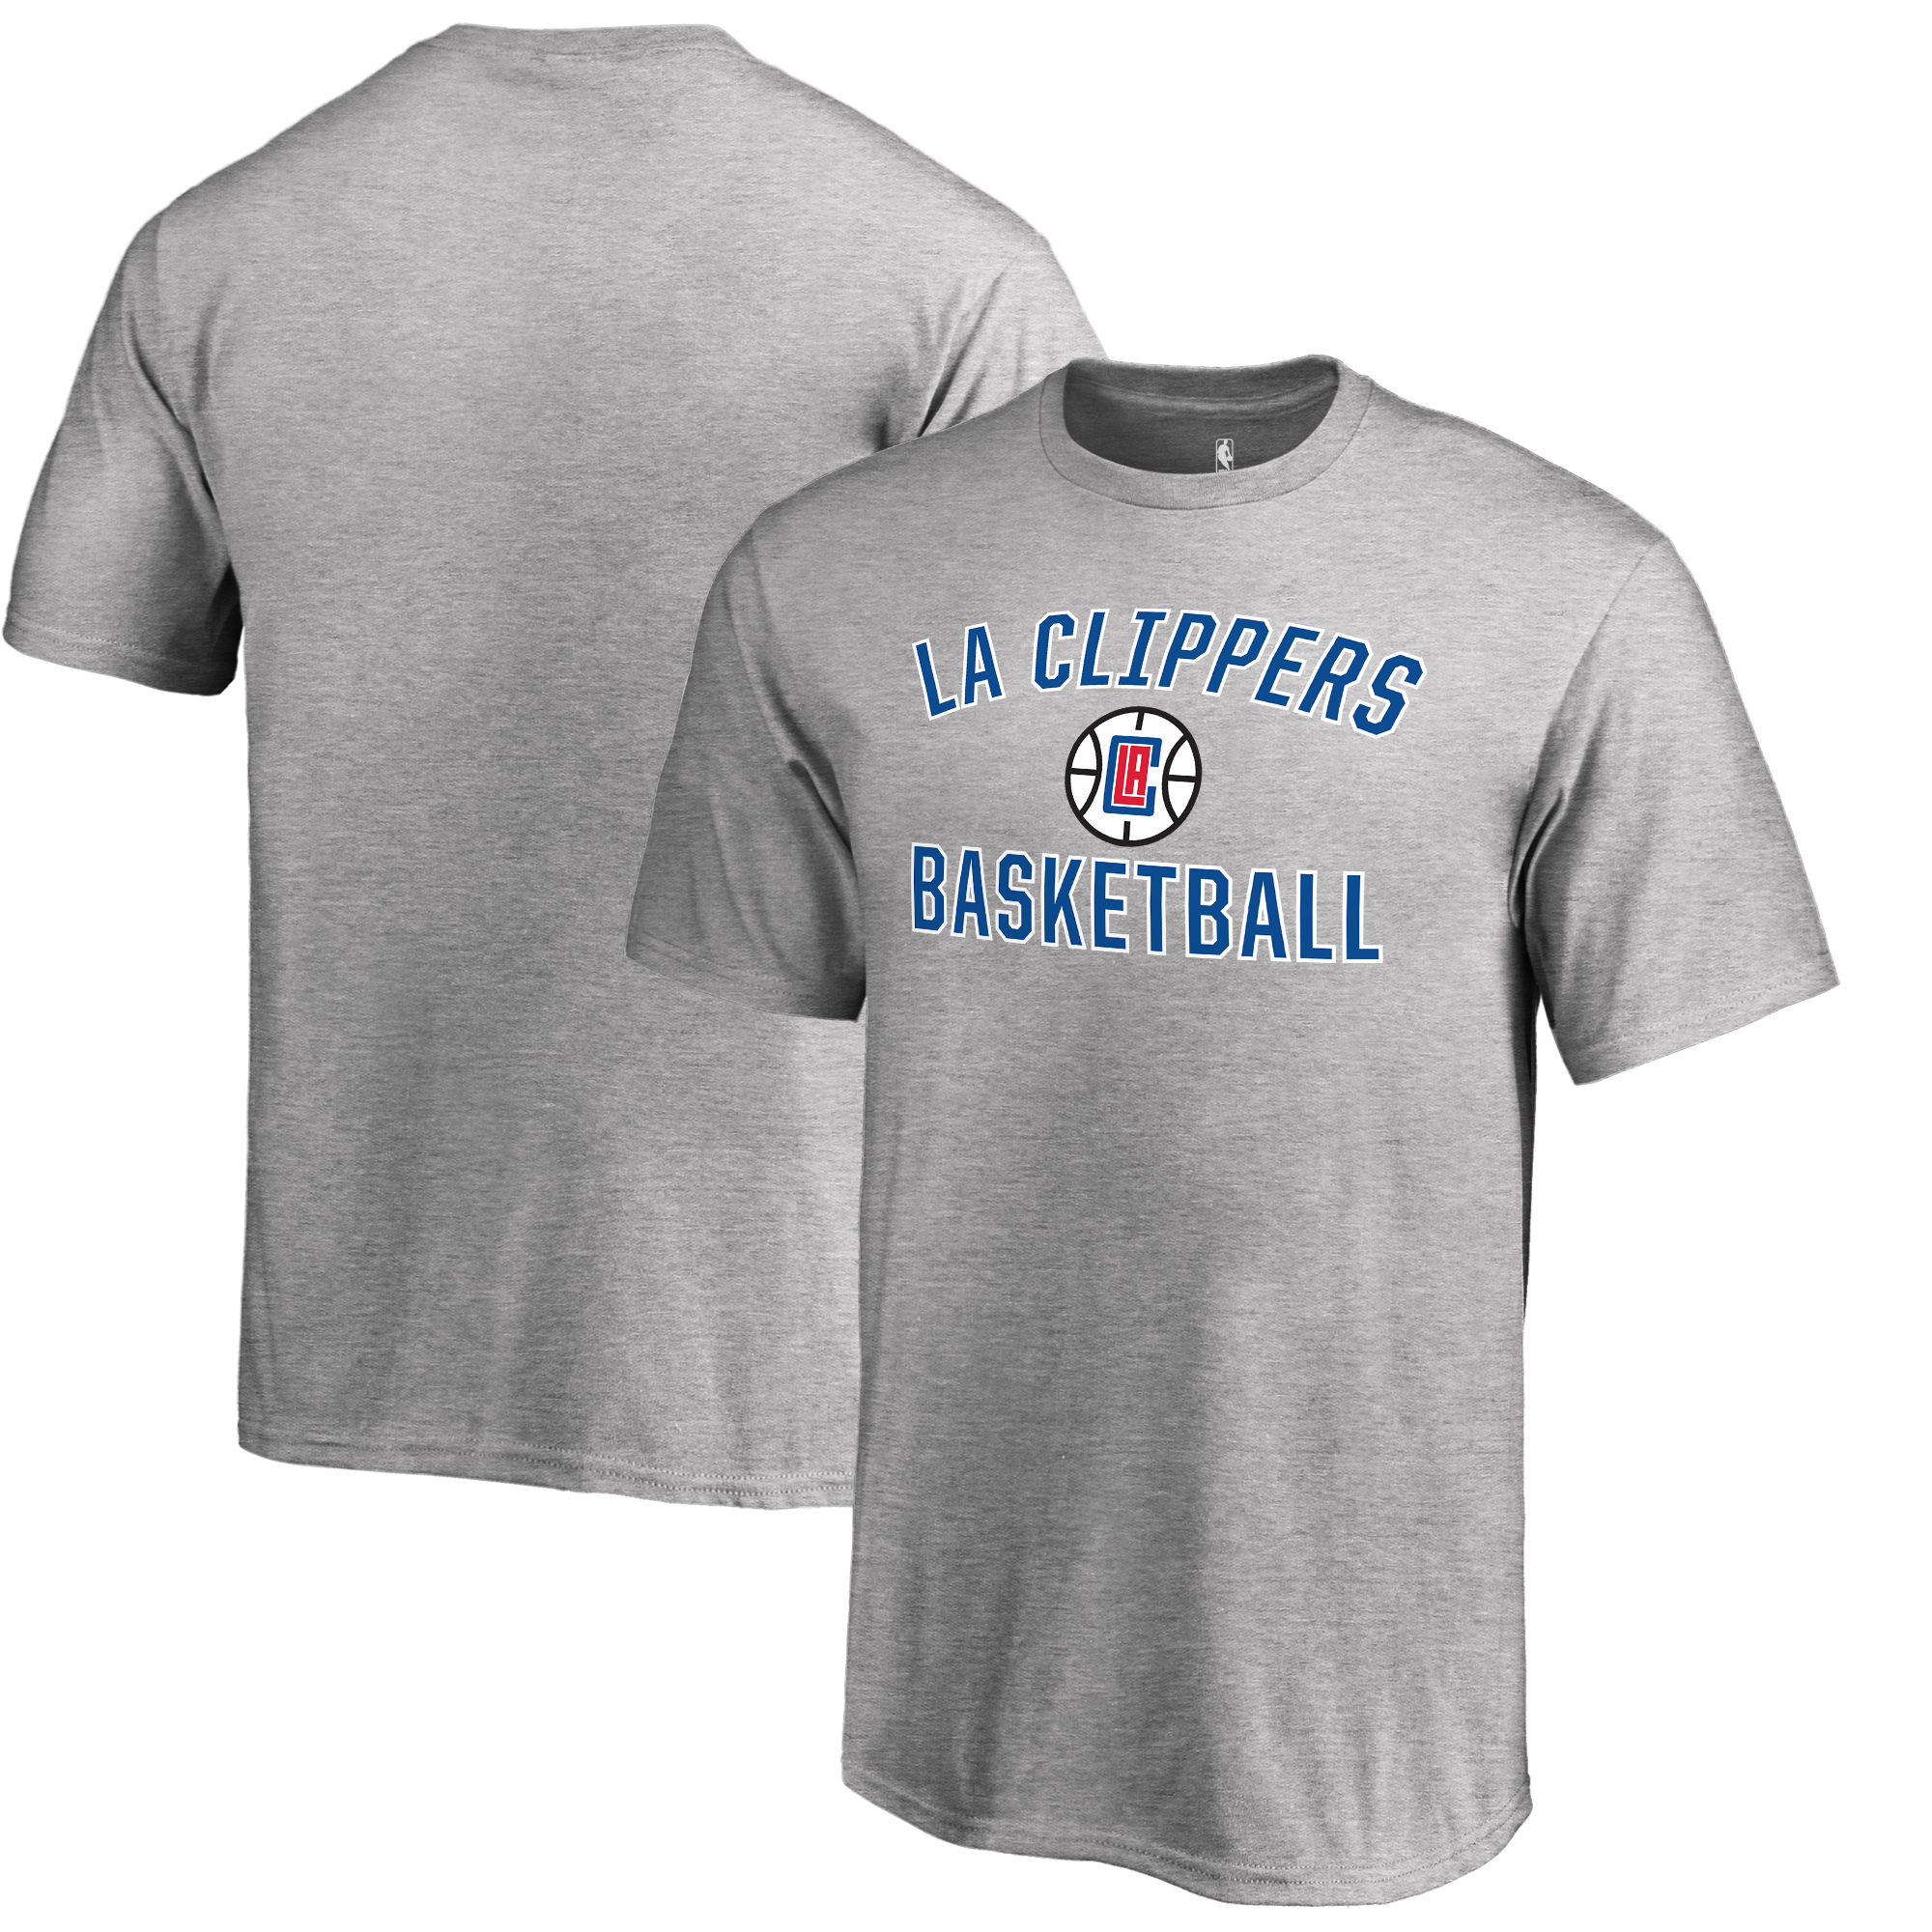 LA Clippers Fanatics Branded Youth Victory Arch T-Shirt - Heathered Gray